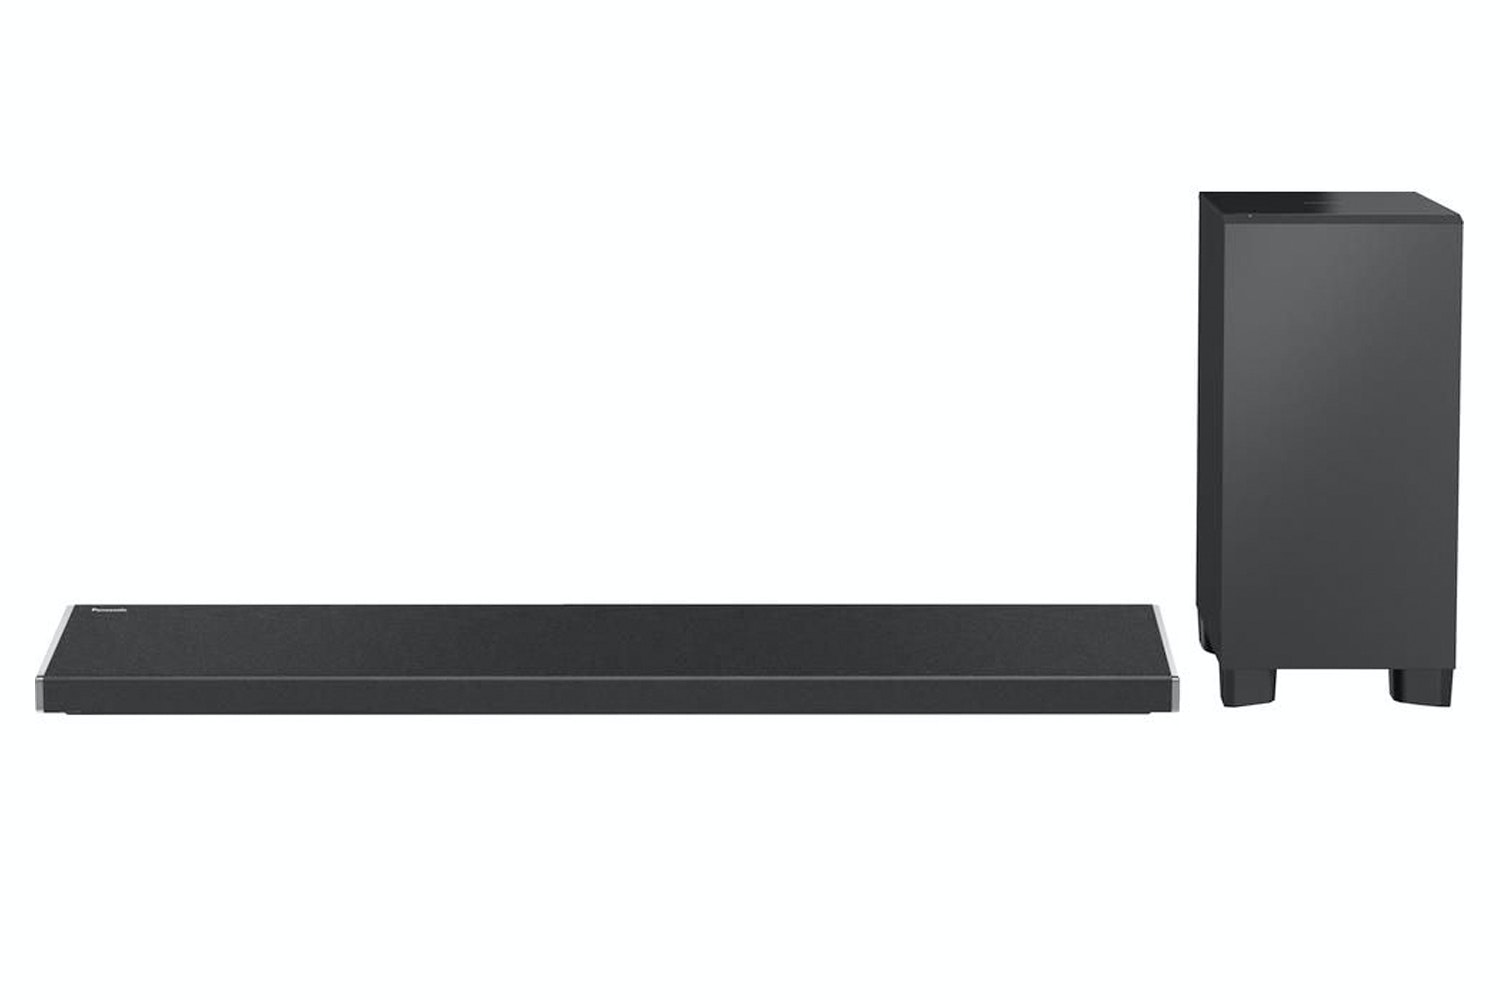 Panasonic Soundbar | SC-ALL70TEBK